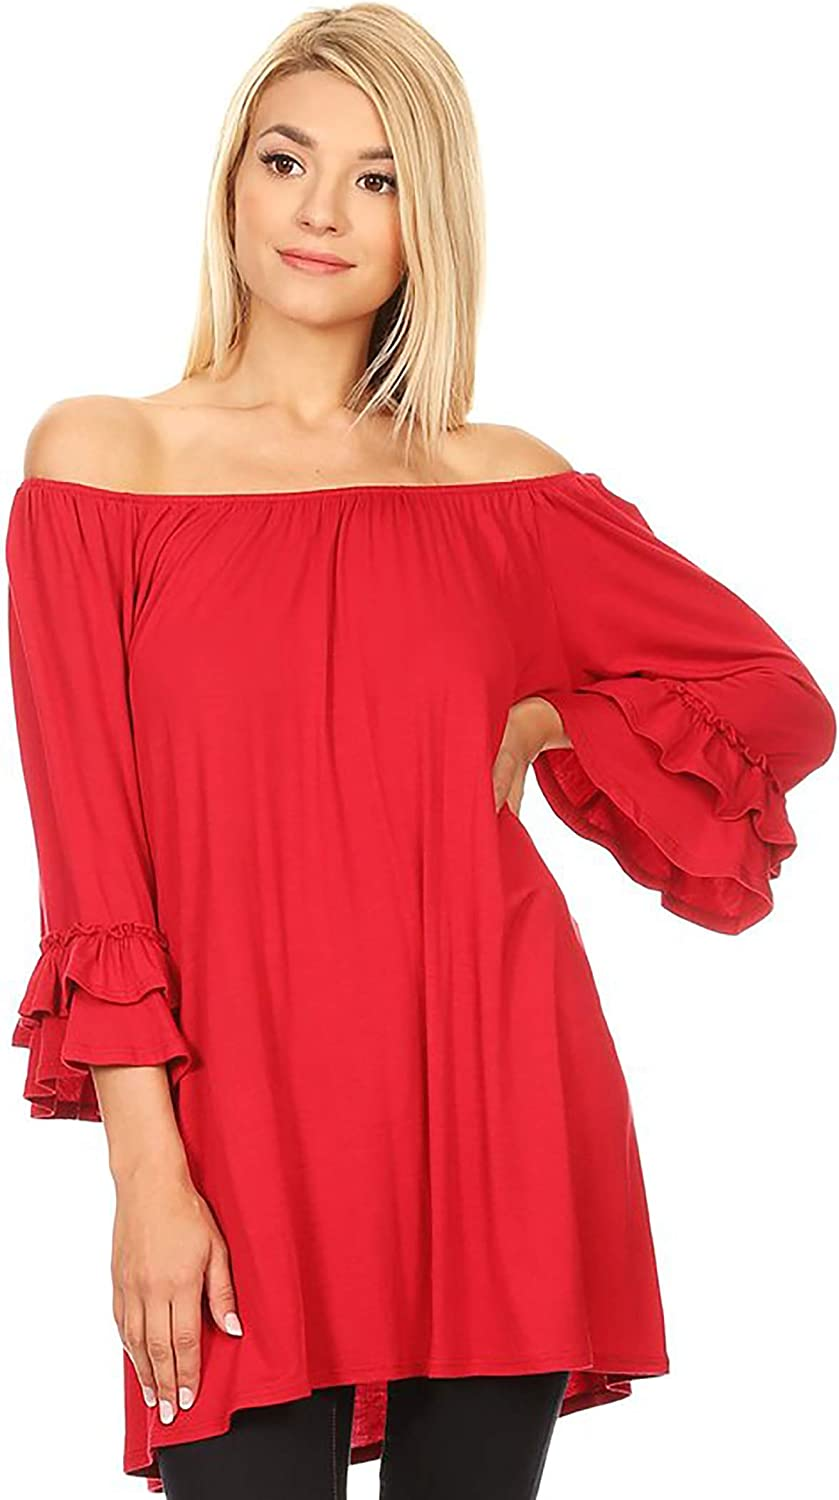 HEO CLOTHING Women's Plus & Regular Size Solid 3 4 Sleeve Tunic Off Shoulder Mini Dress Shirt Top Made in USA